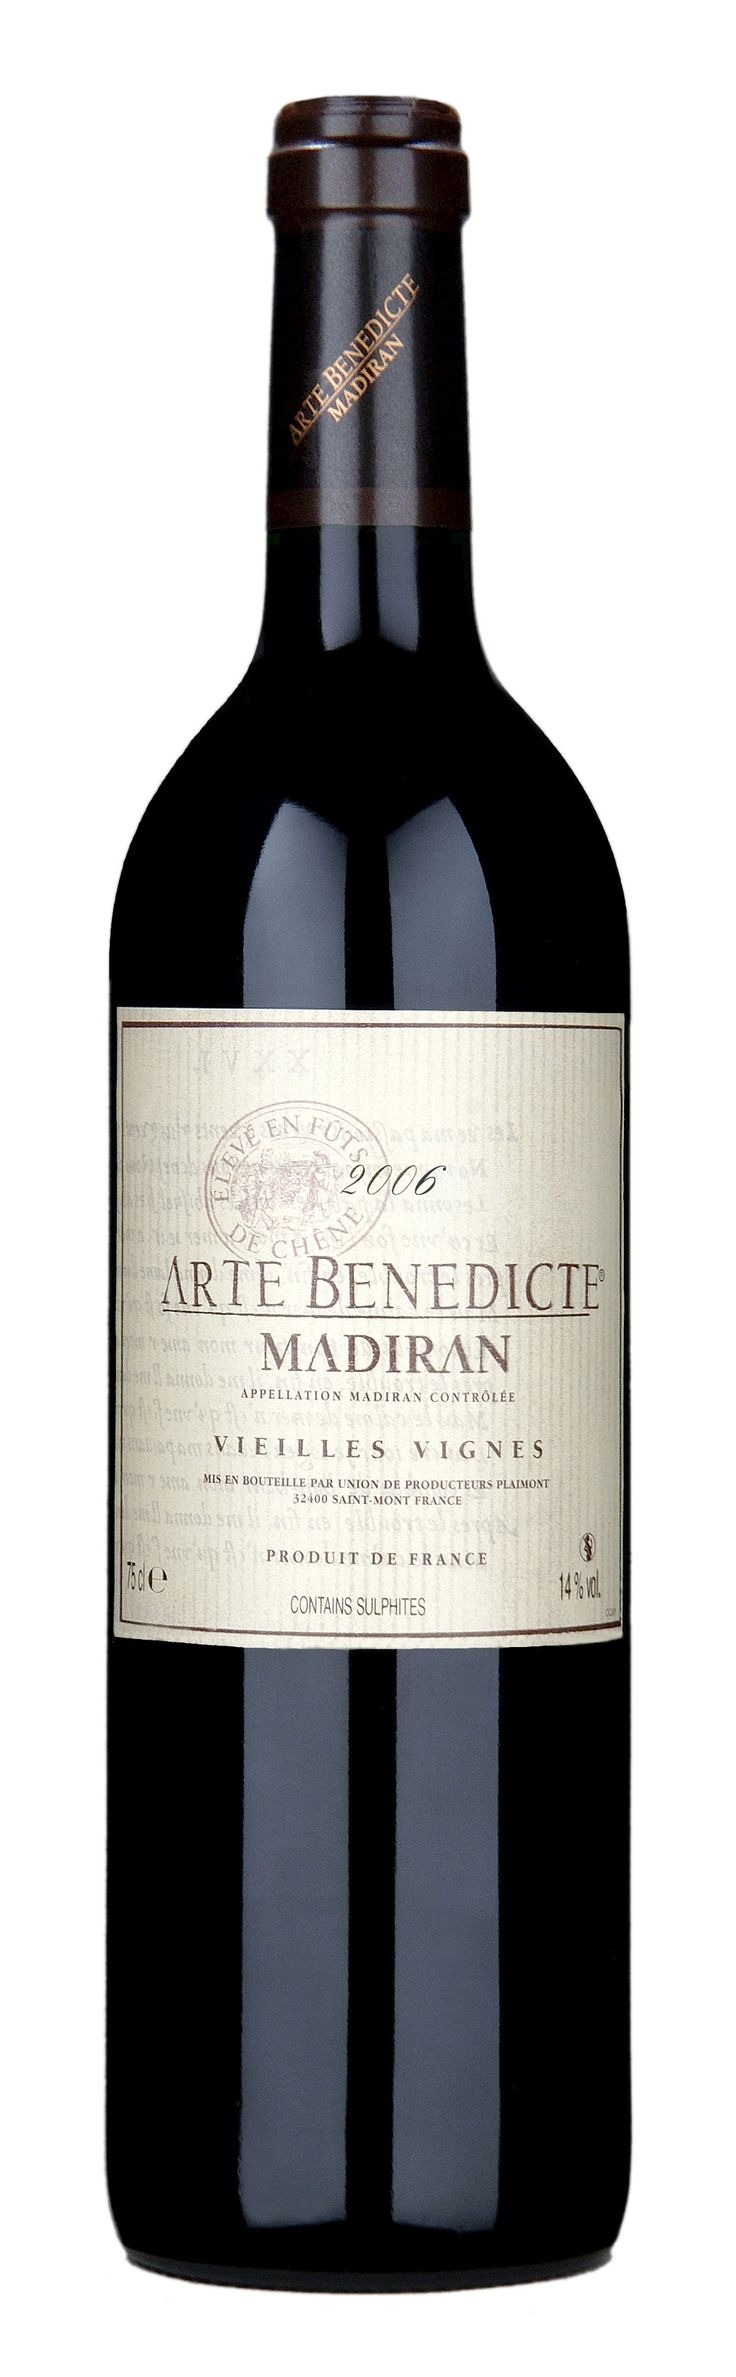 Producteurs Plaimont Arte Benedicte Madiran Rouge so beautiful & savoury & delicious